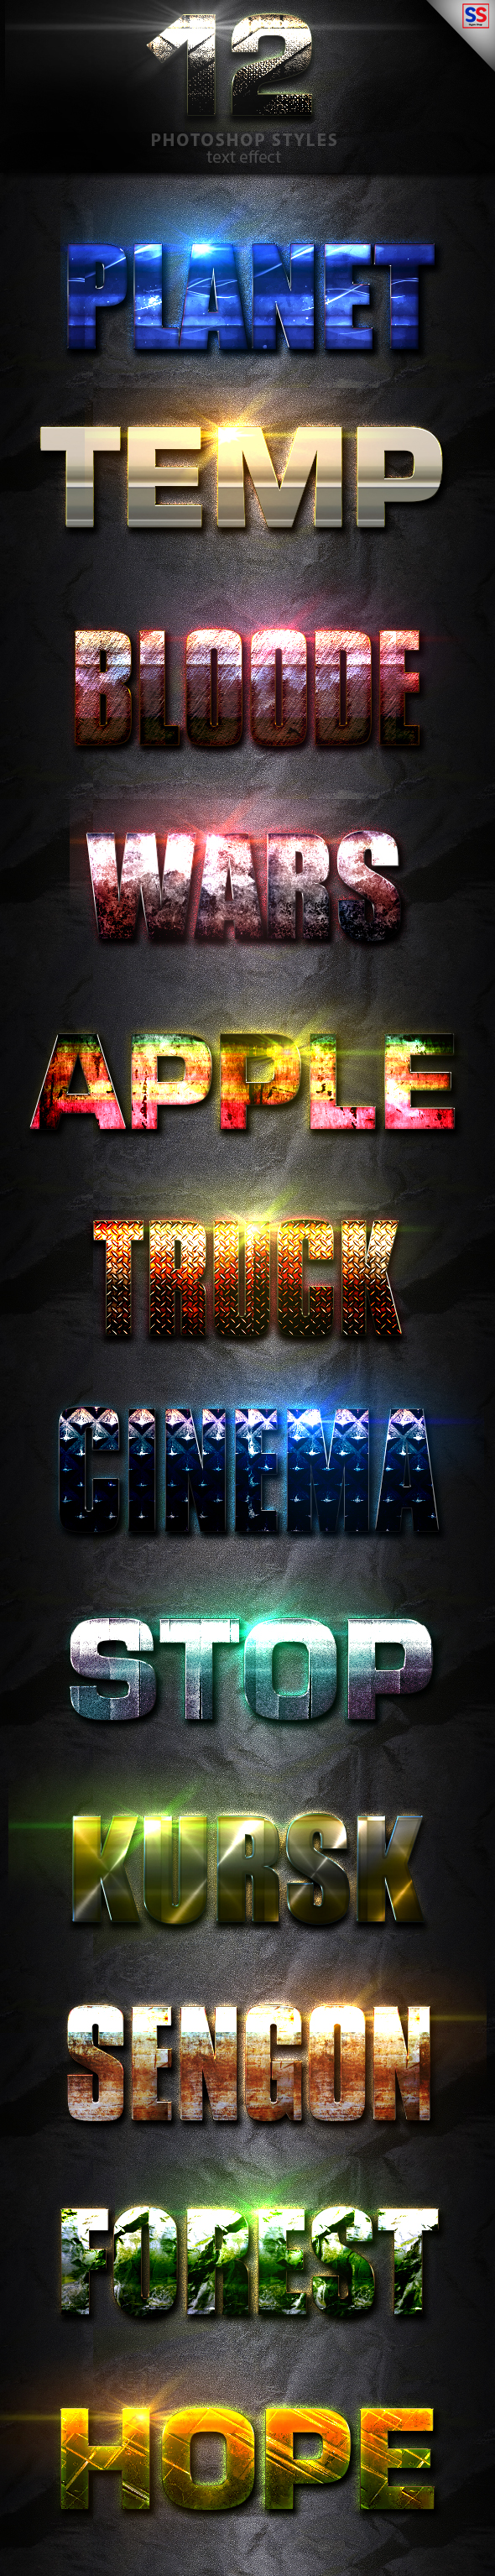 12 Light Photoshop text Effect Vol 14 - Text Effects Styles